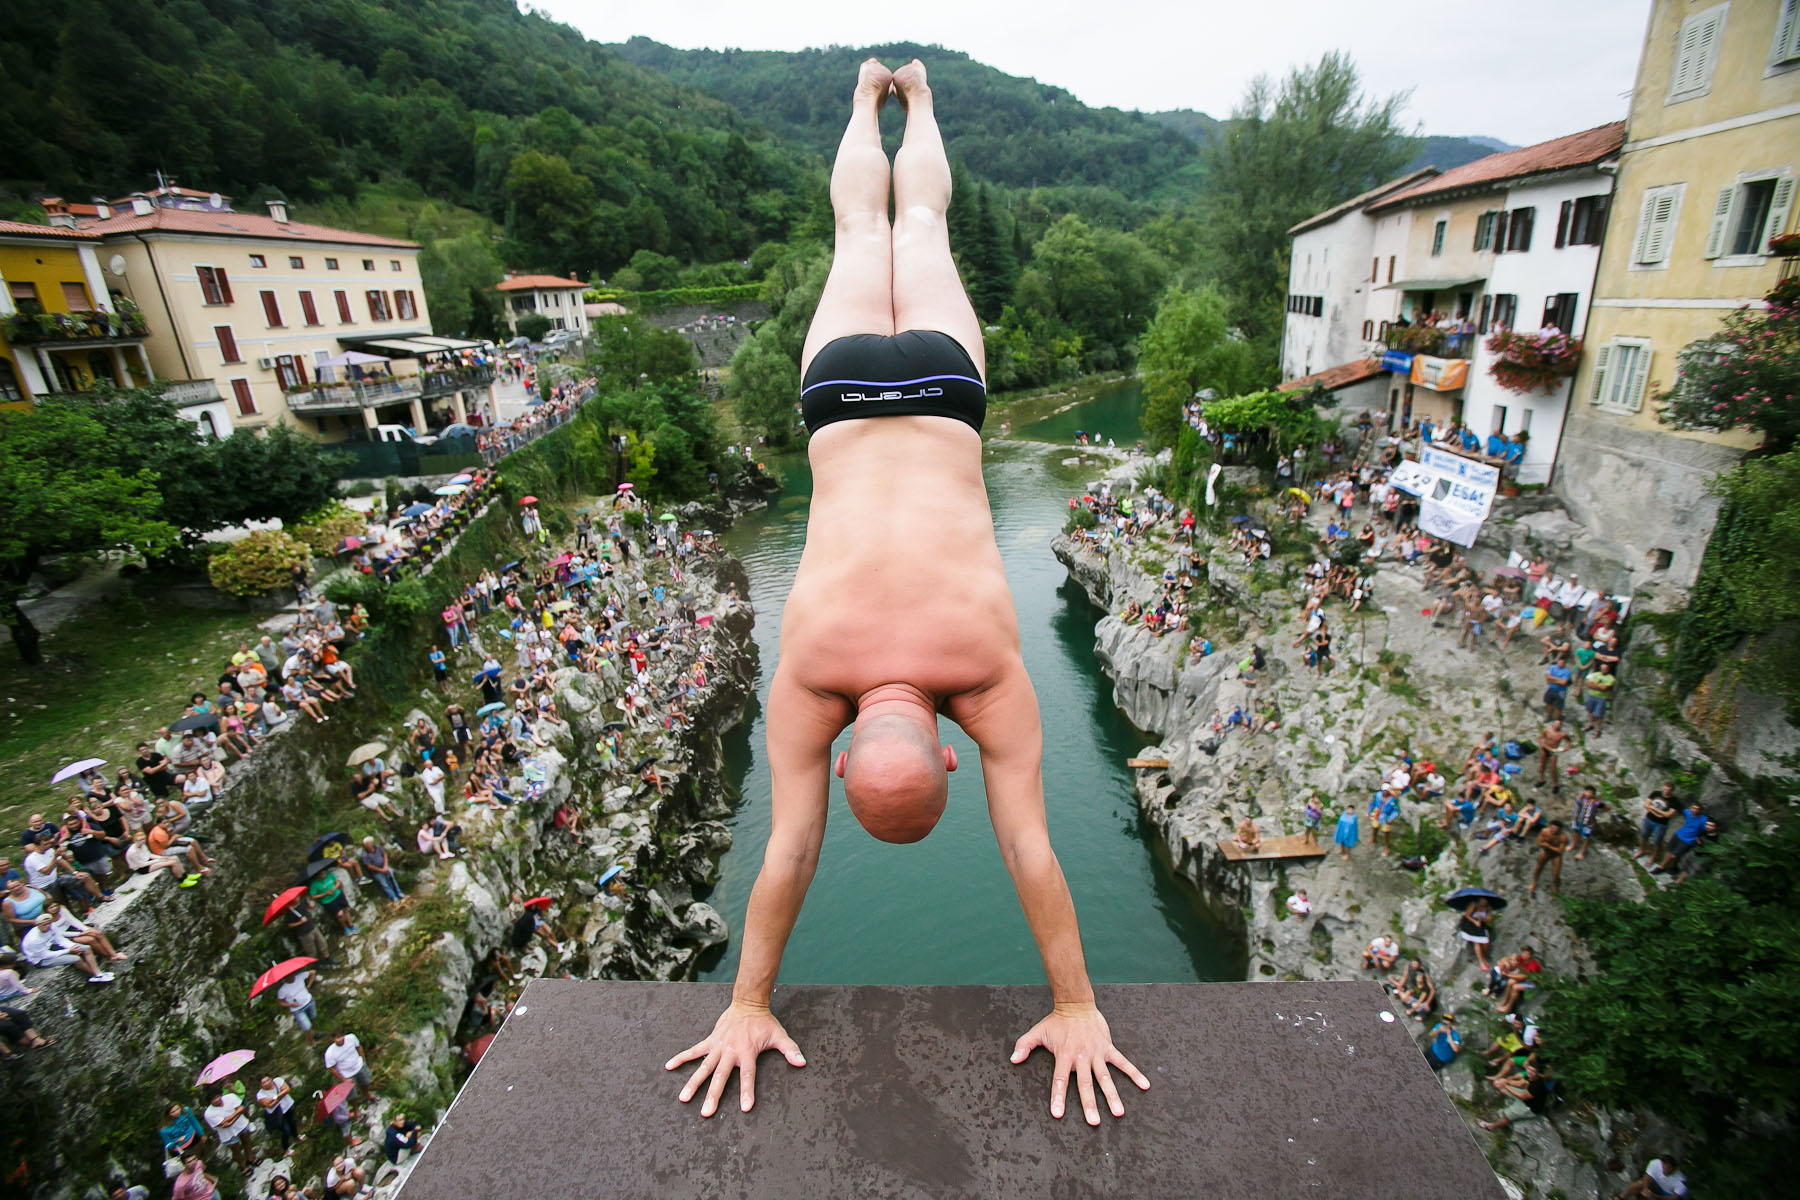 A competitor prepares to dive from a bridge over river Soca during an annual diving competition in Kanal, Slovenia, August 16, 2015.